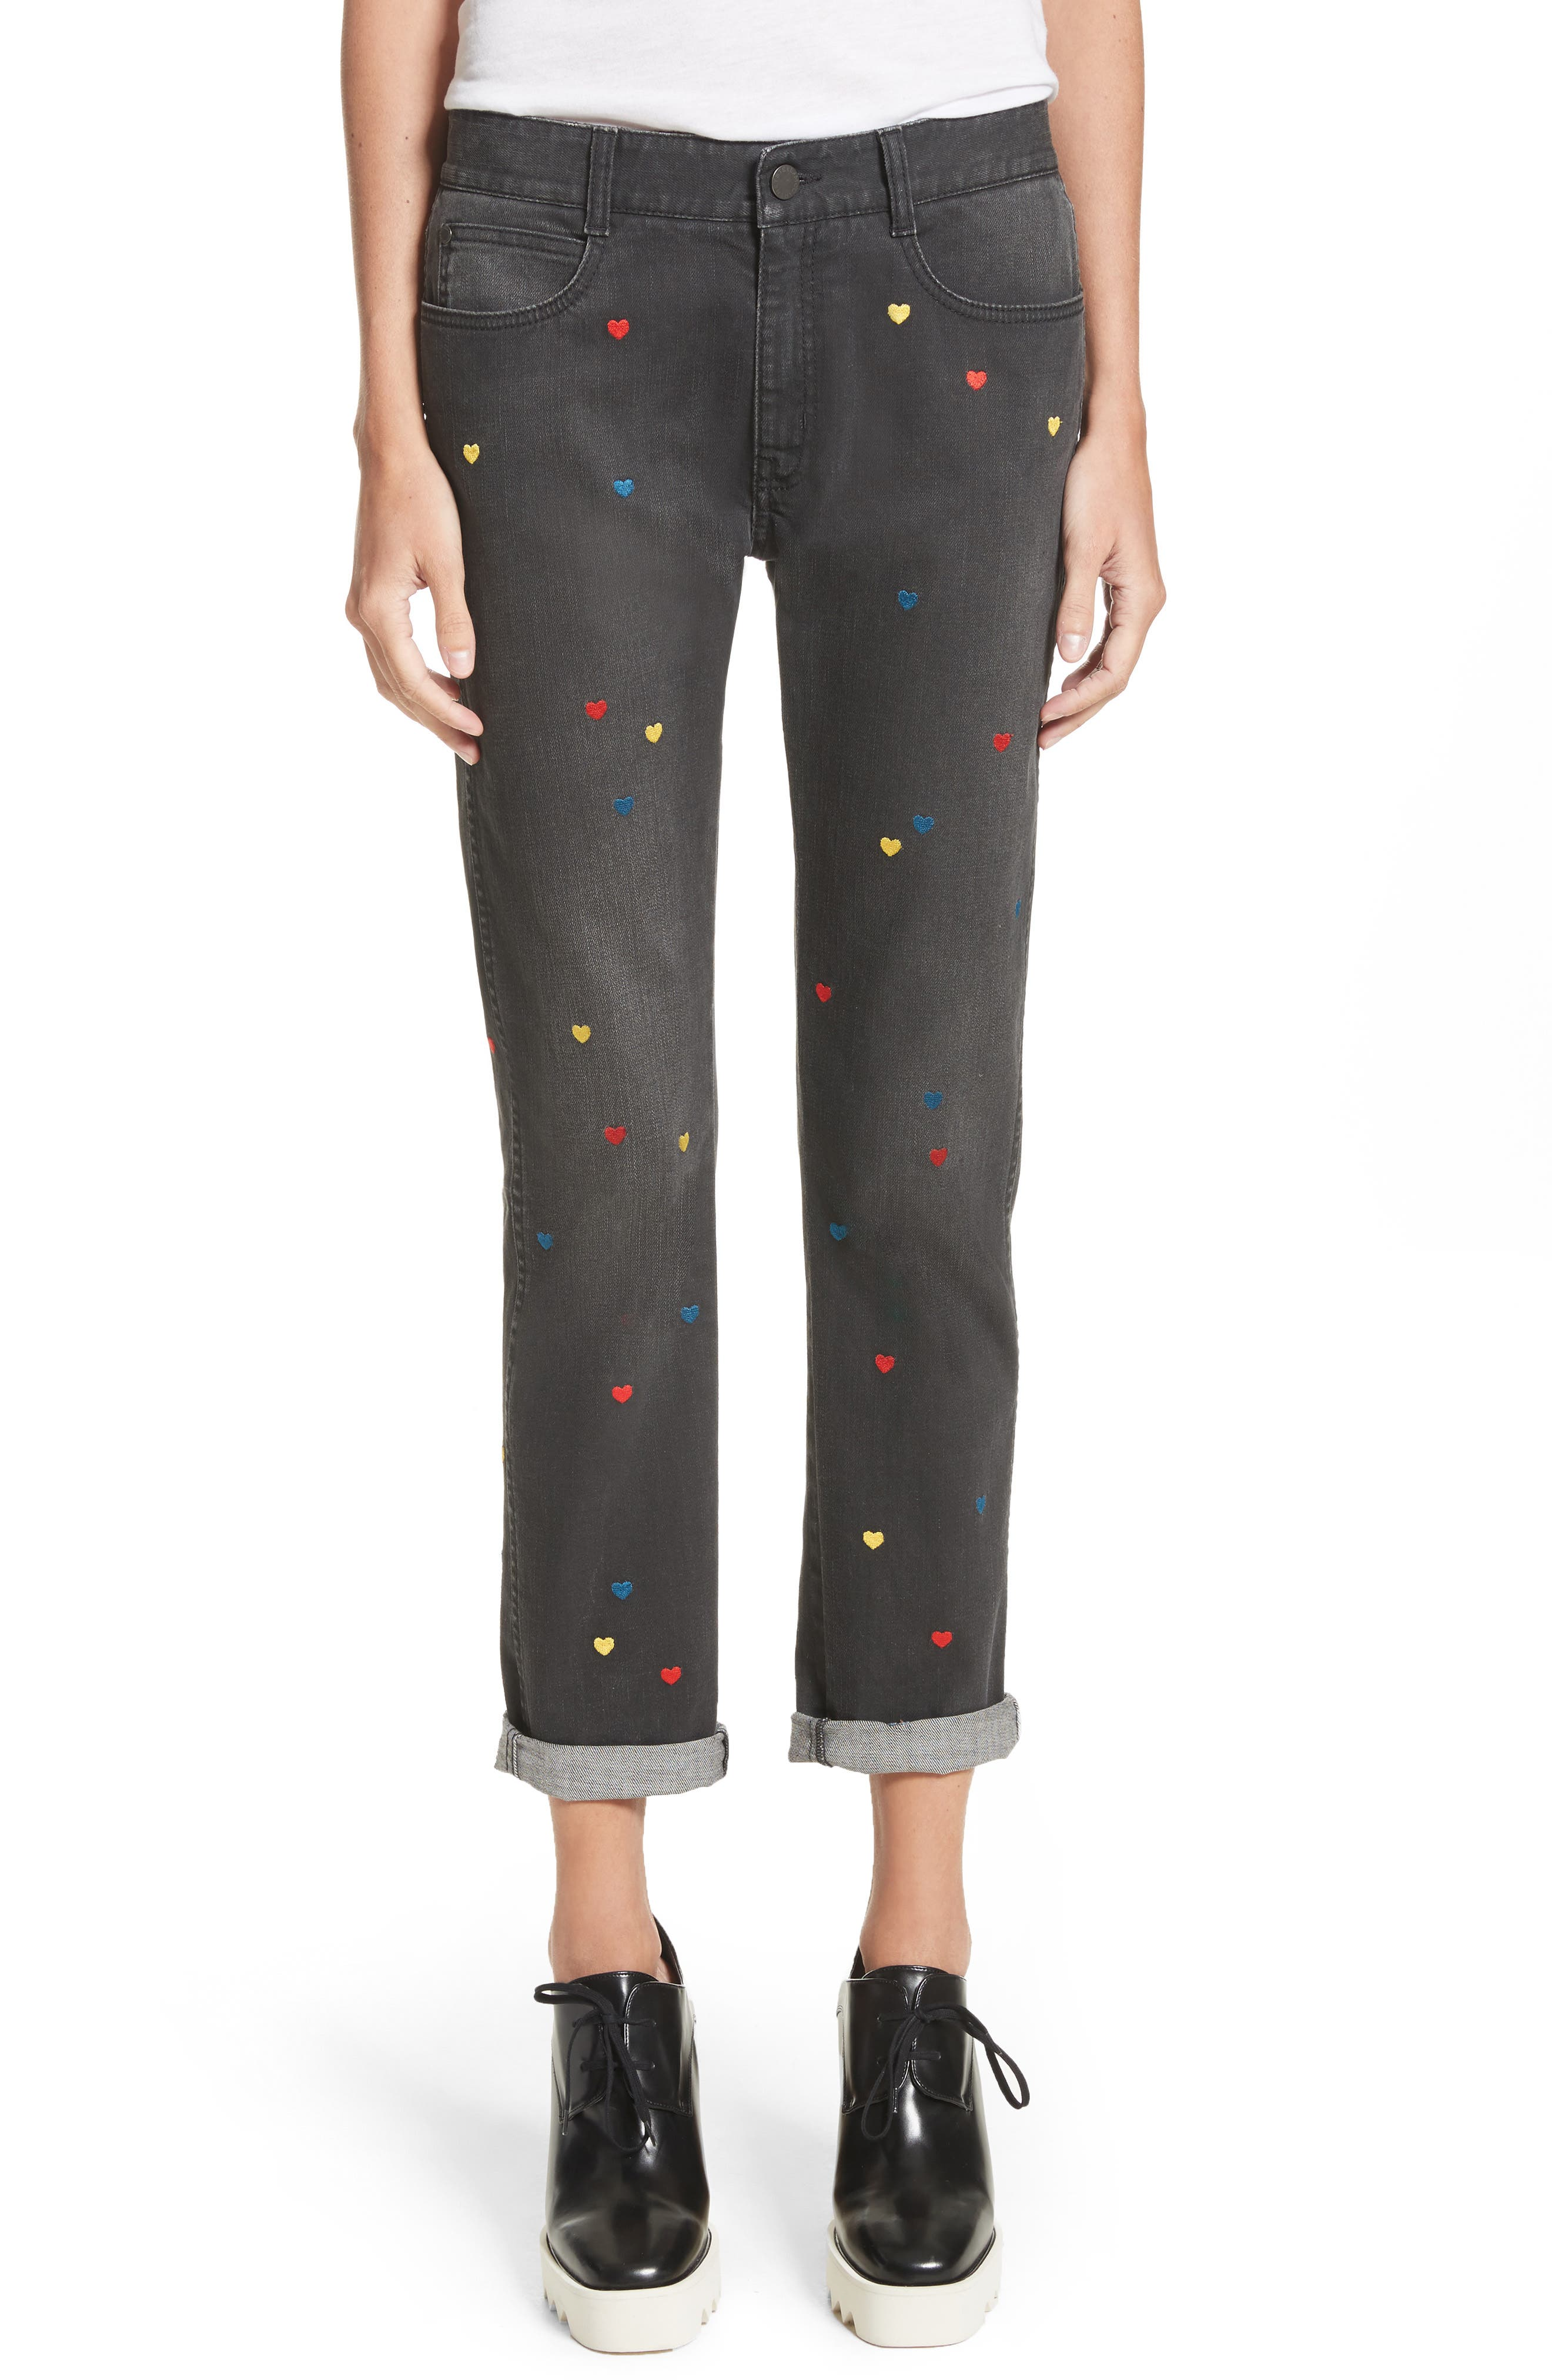 Alternate Image 1 Selected - Stella McCartney Heart Embroidered Skinny Boyfriend Jeans